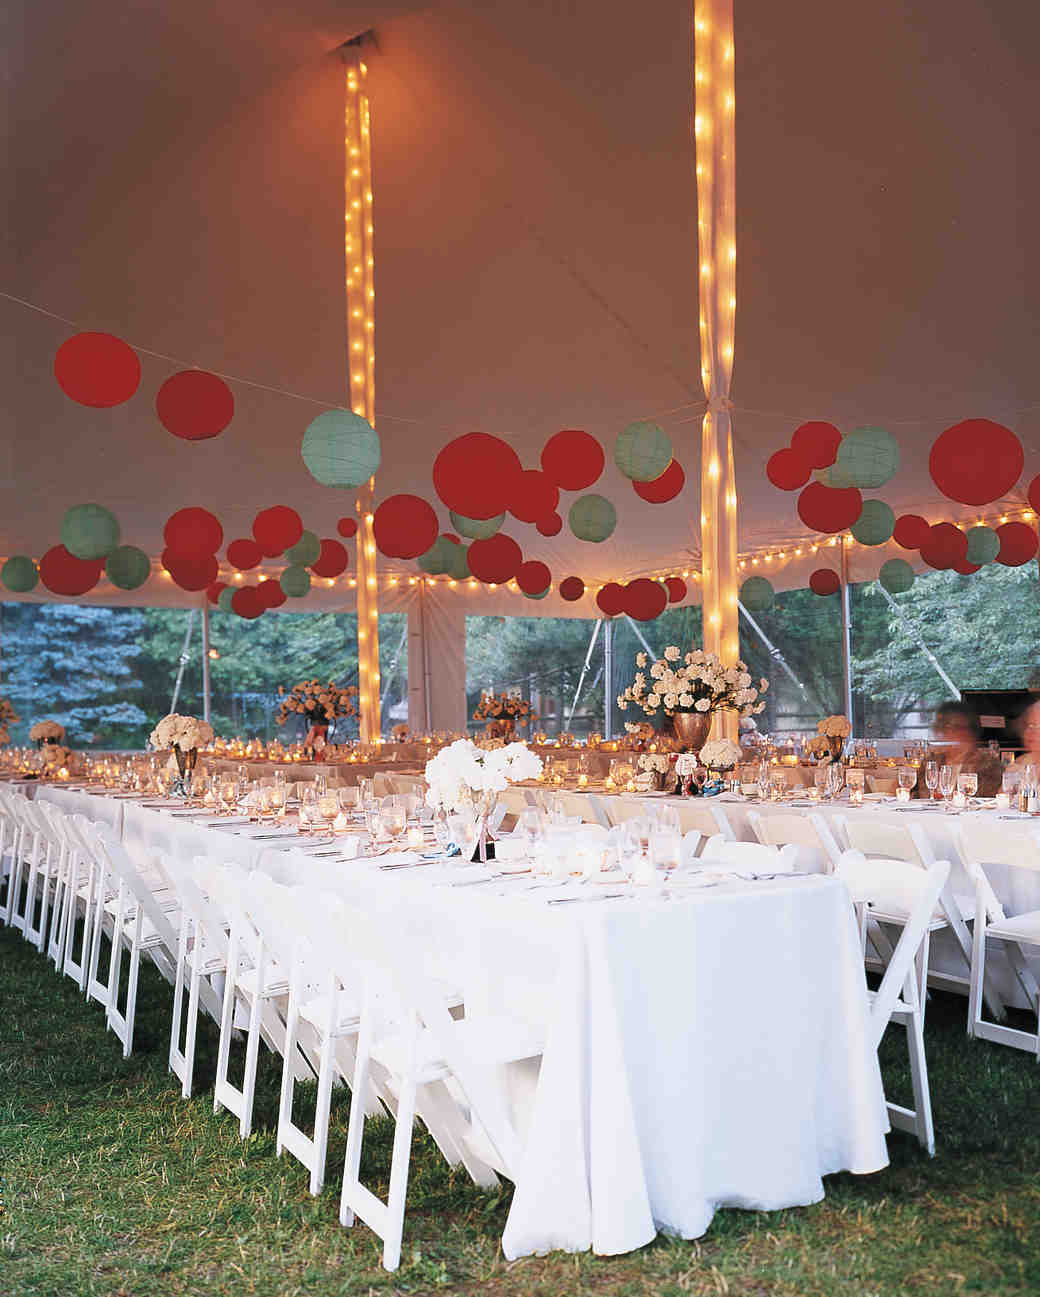 Wedding Party Decorations: 33 Tent Decorating Ideas To Upgrade Your Wedding Reception